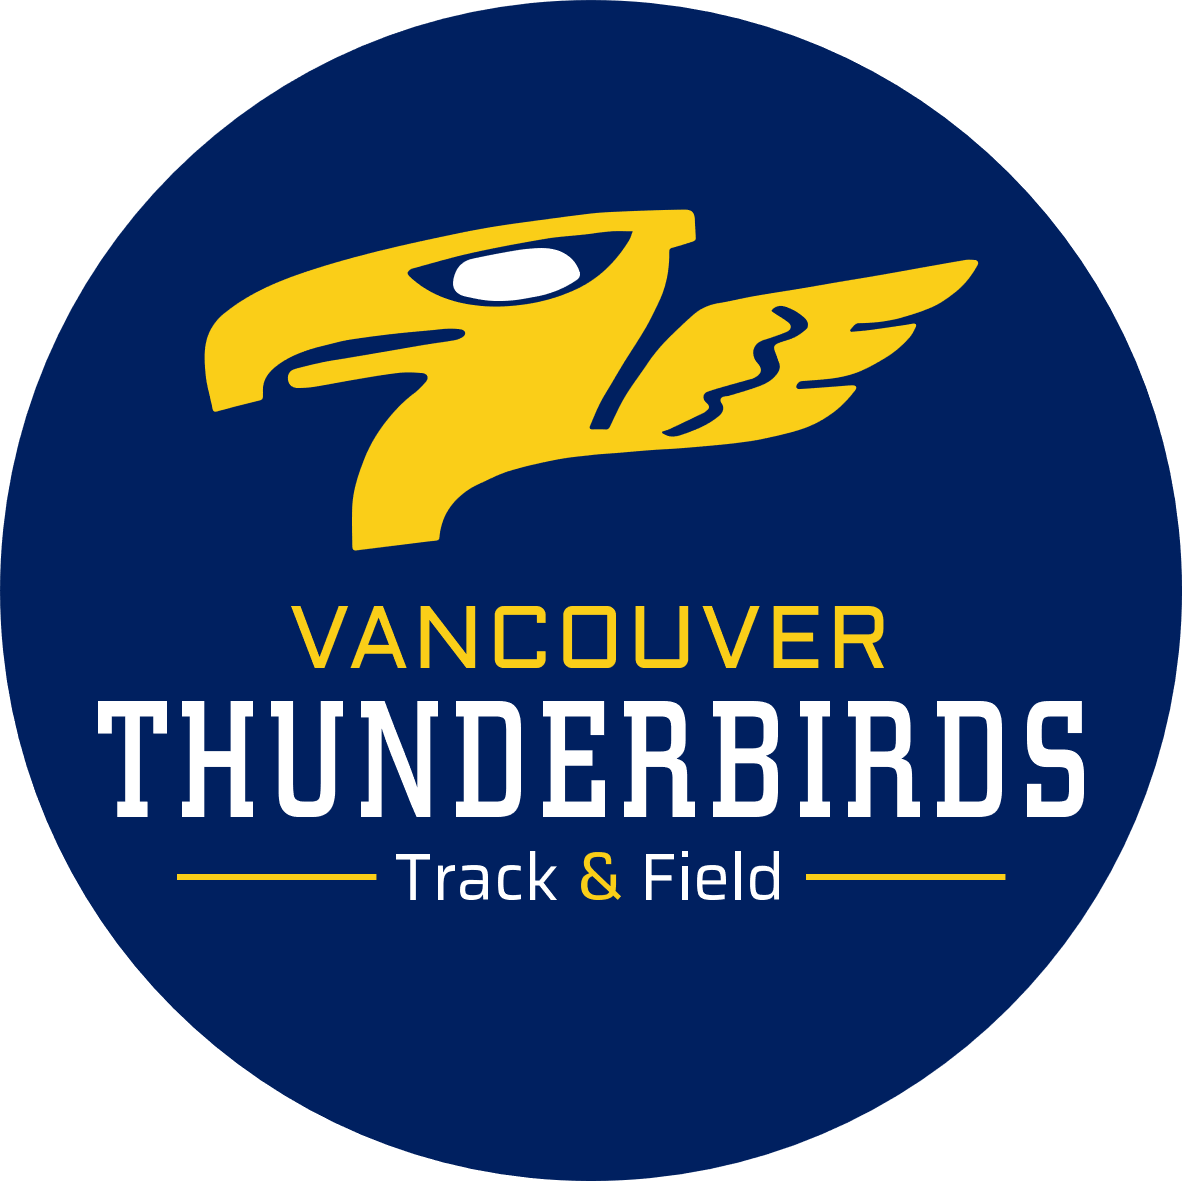 Cindy Crowther <br>Coach at Vancouver Thunderbirds T&F Club <br> Former Canadian National Team Athlete